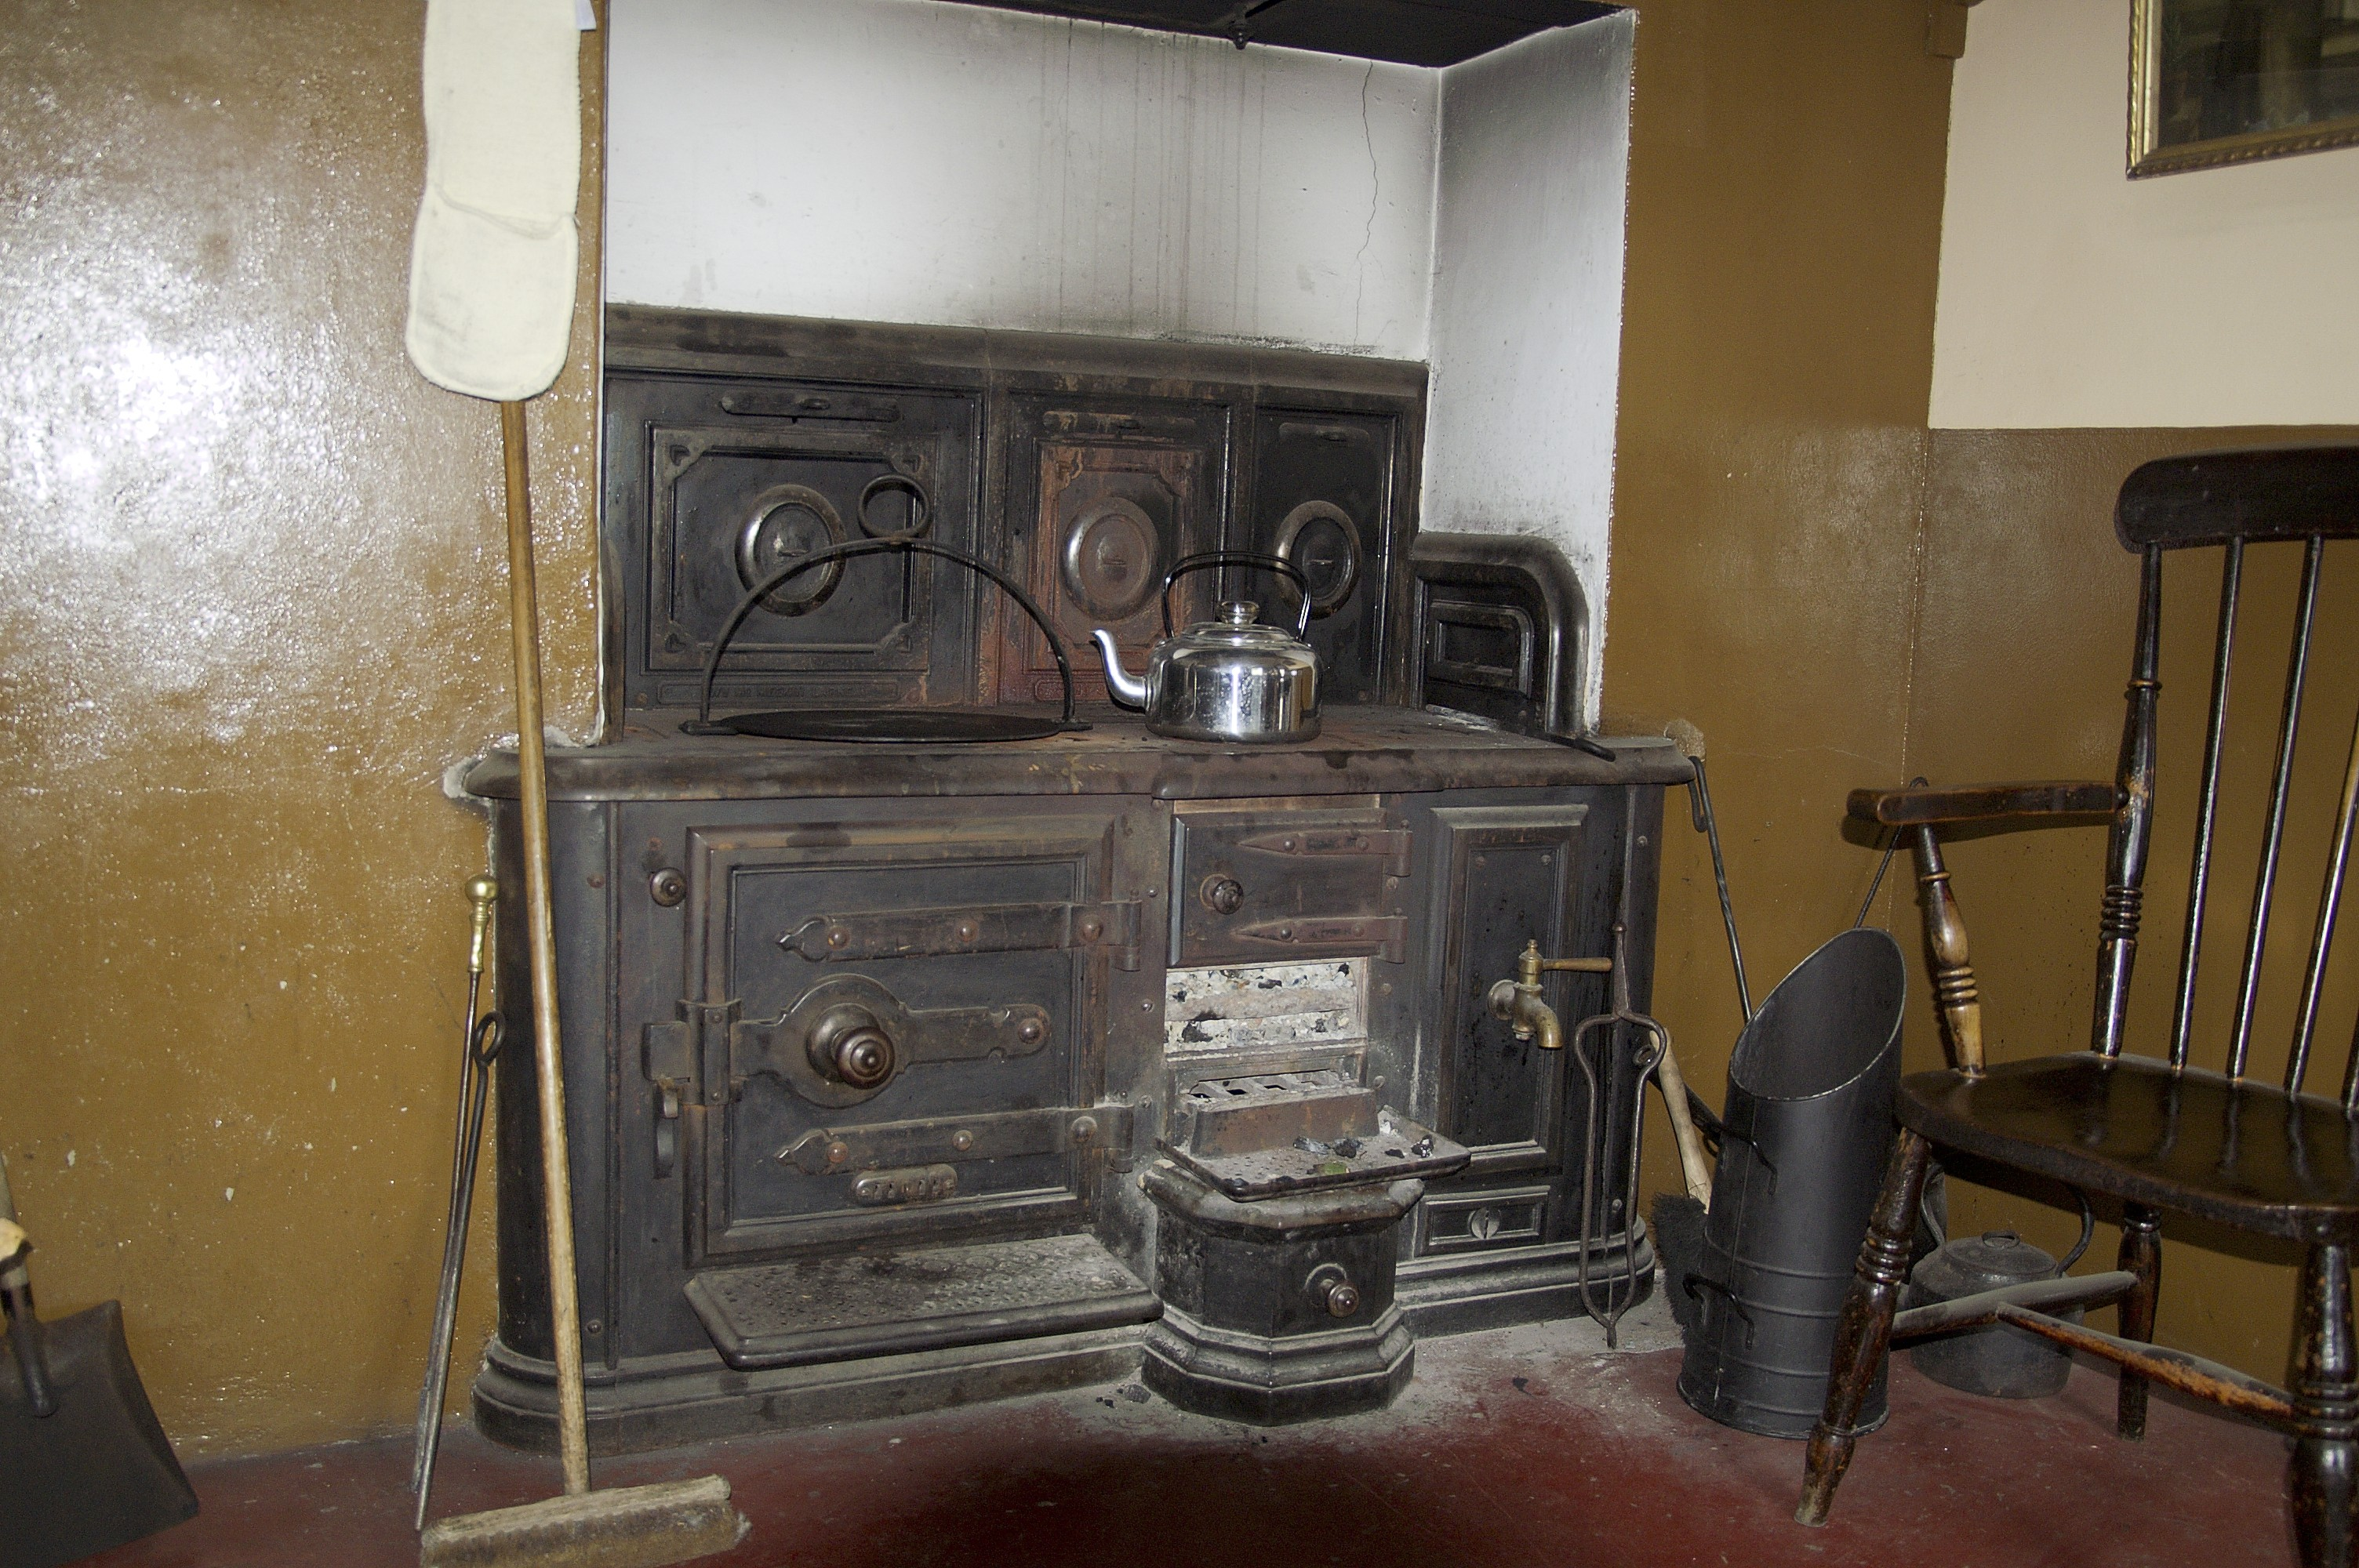 The priest obviously had a better kitchen than most!